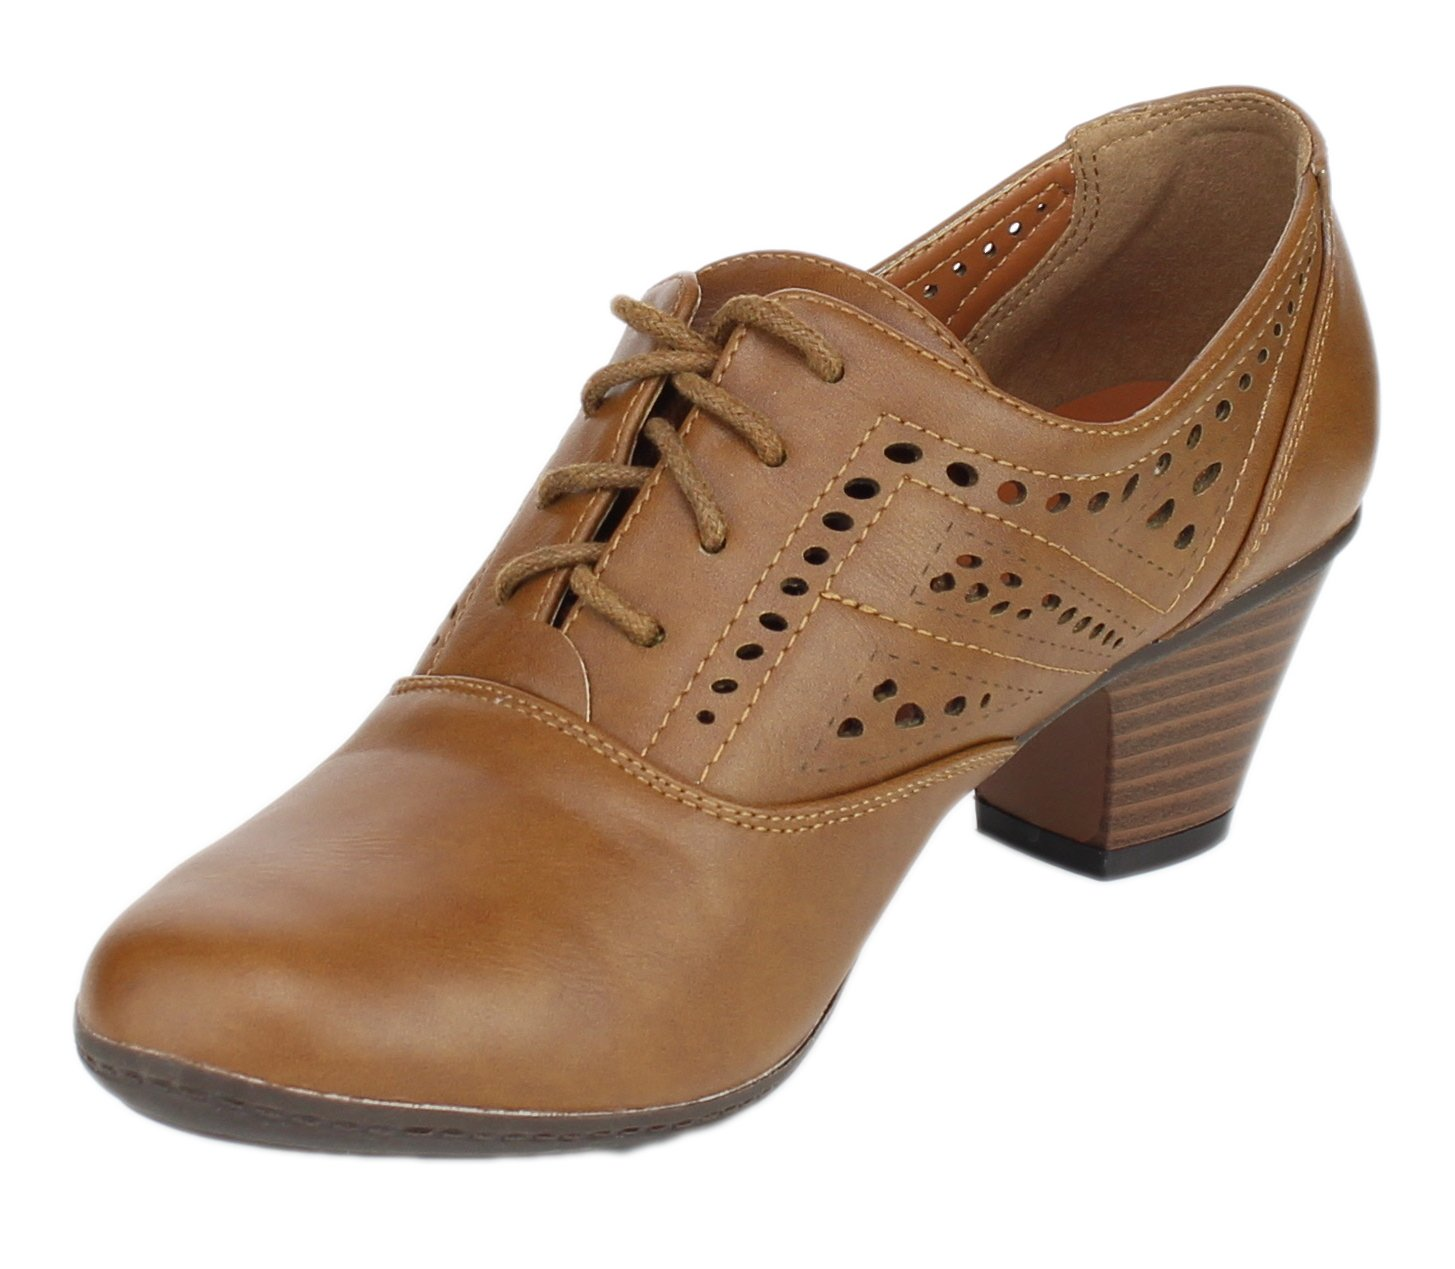 Refresh Women's London-01 Cutout Dressy Heeled Lace up Oxford Shoe (9 B(M) US, Tan) by Refresh